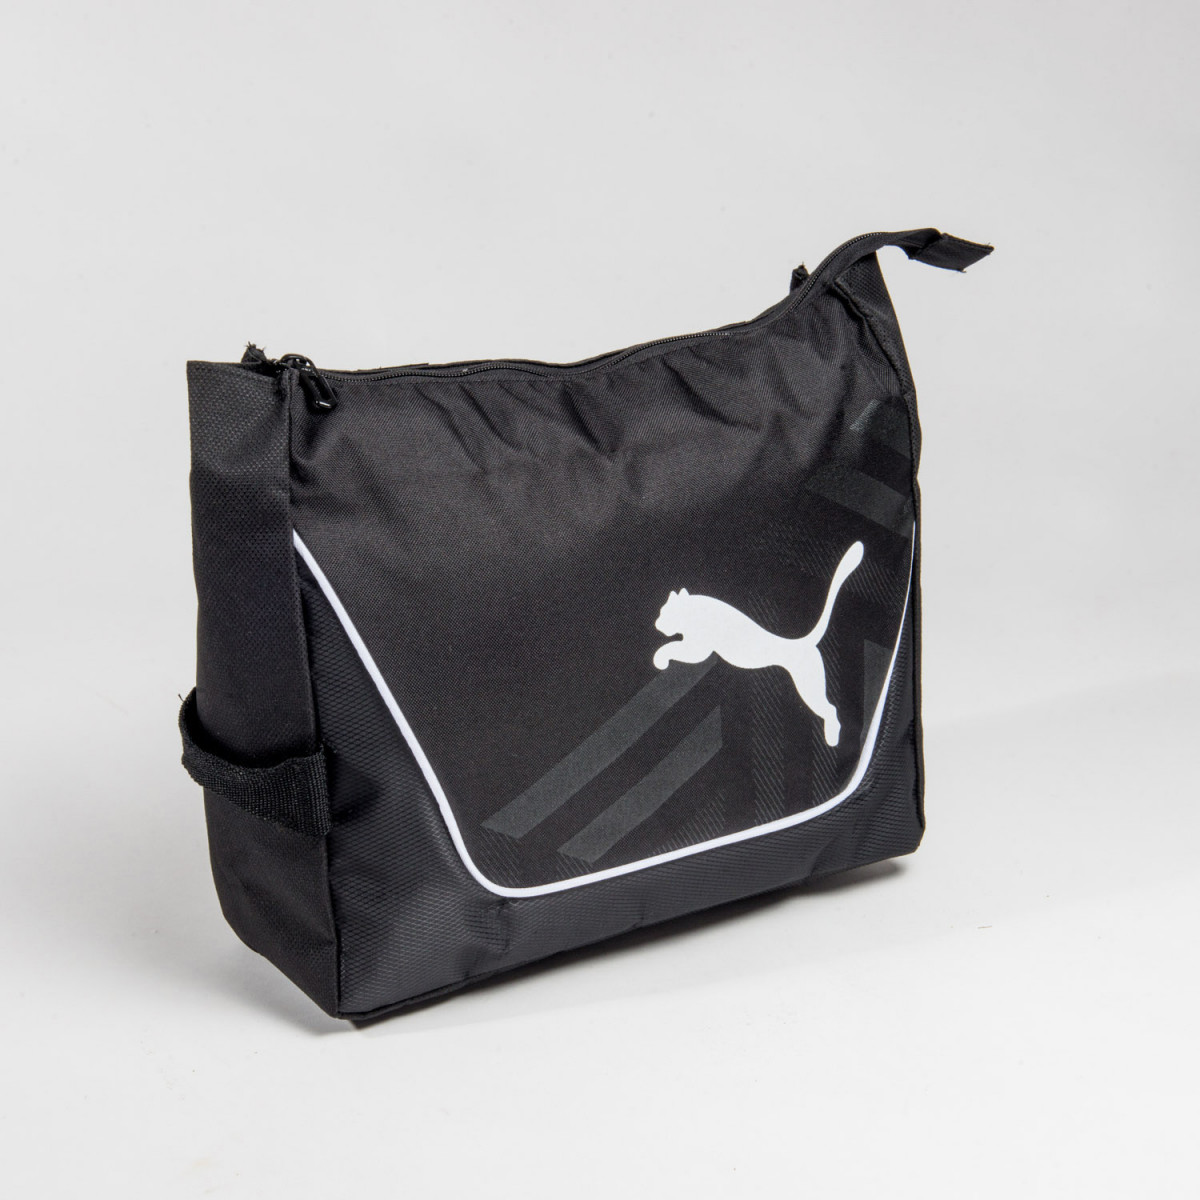 BOTINERO PUMA EVOPOWER SHOE BAG